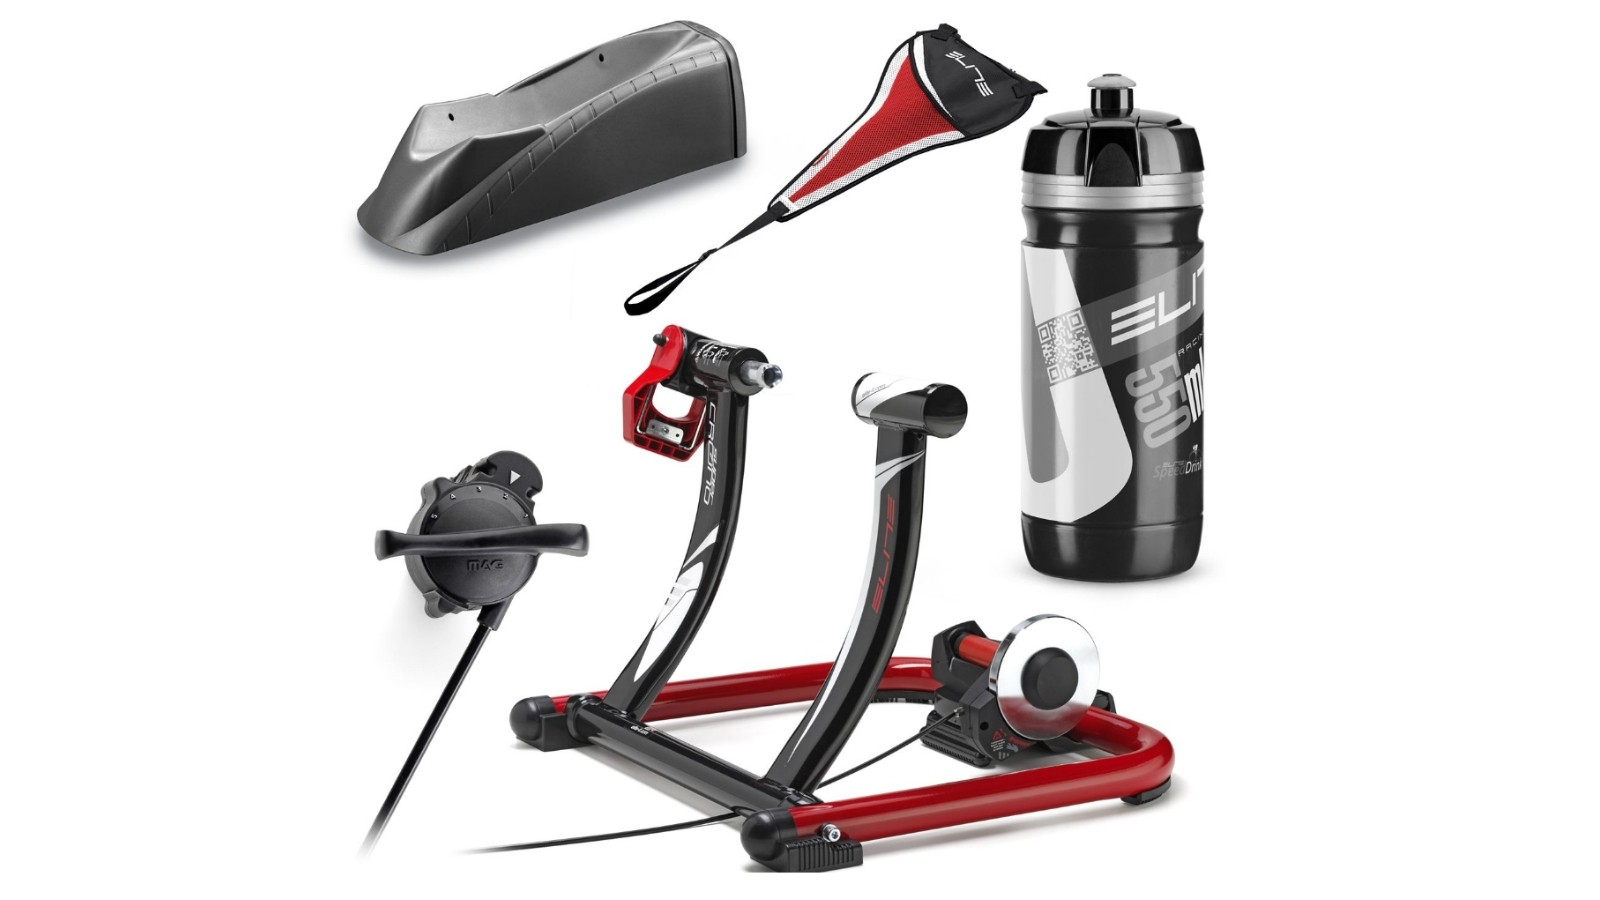 Get your turbo training set up sorted for less